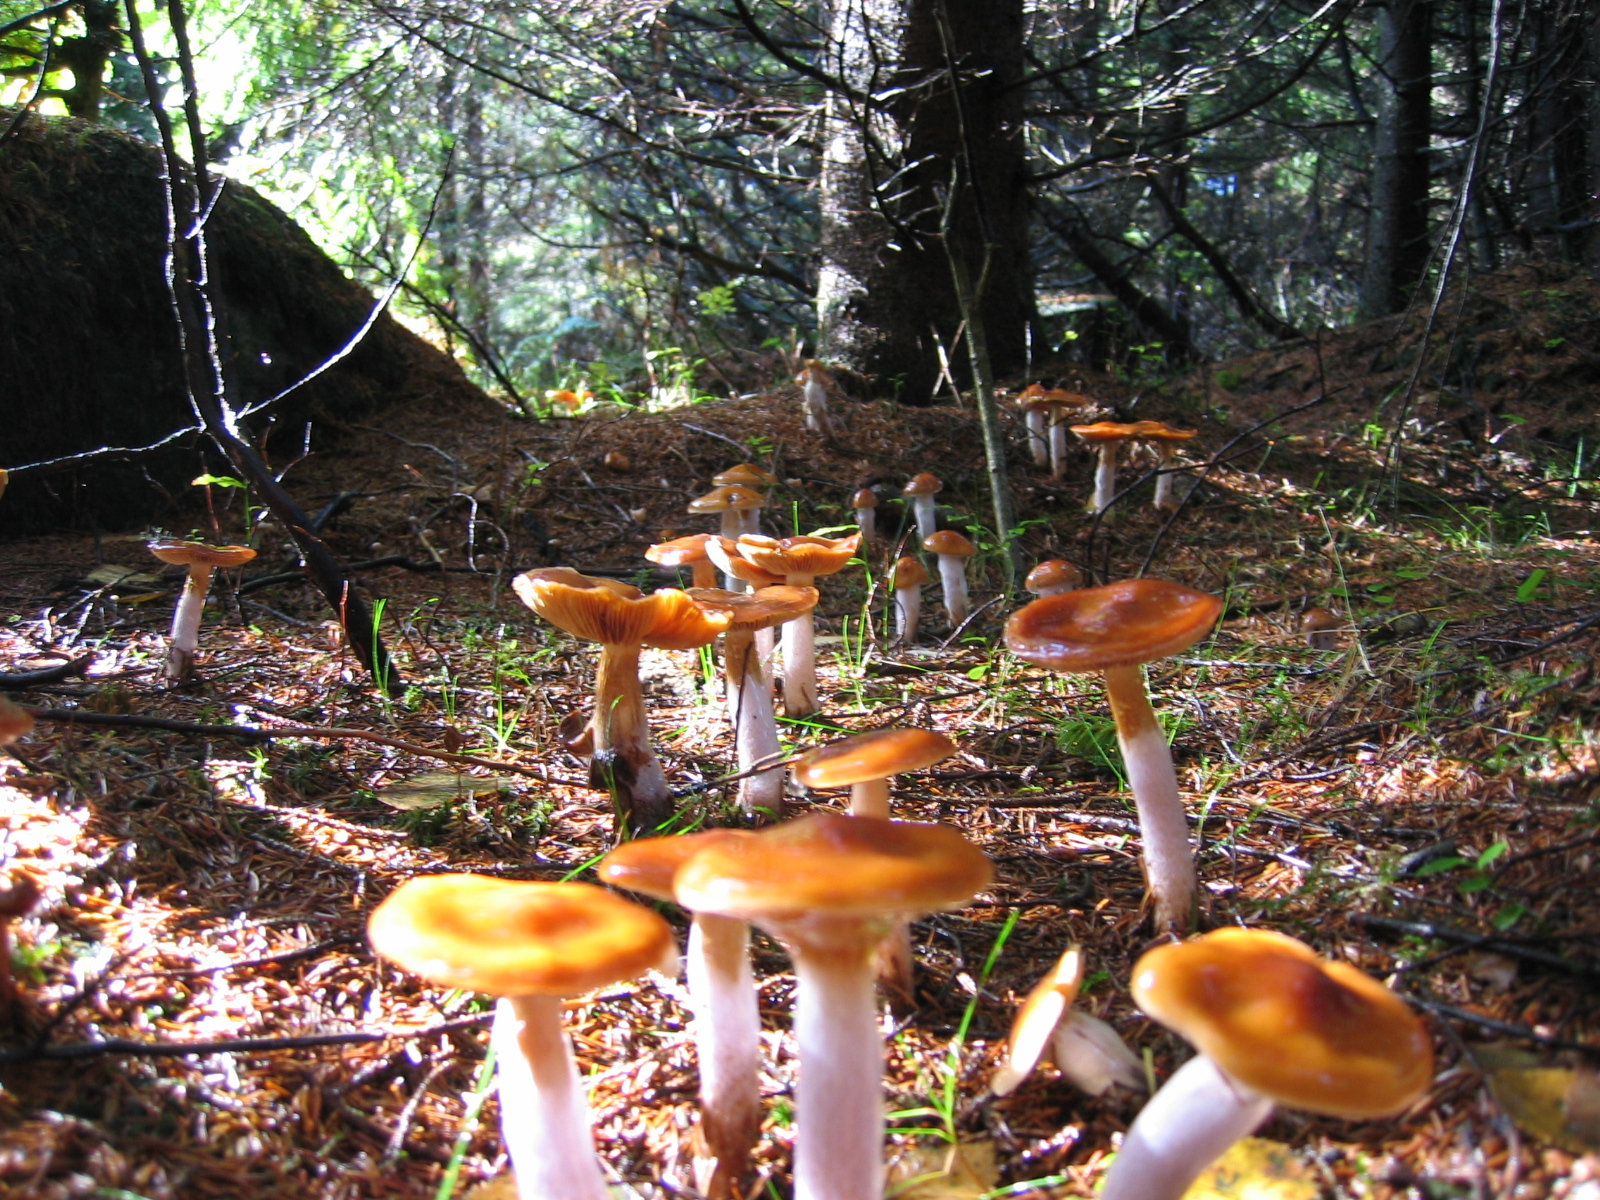 Mushrooms-covering-the-floor-of-a-coniferous-woodland